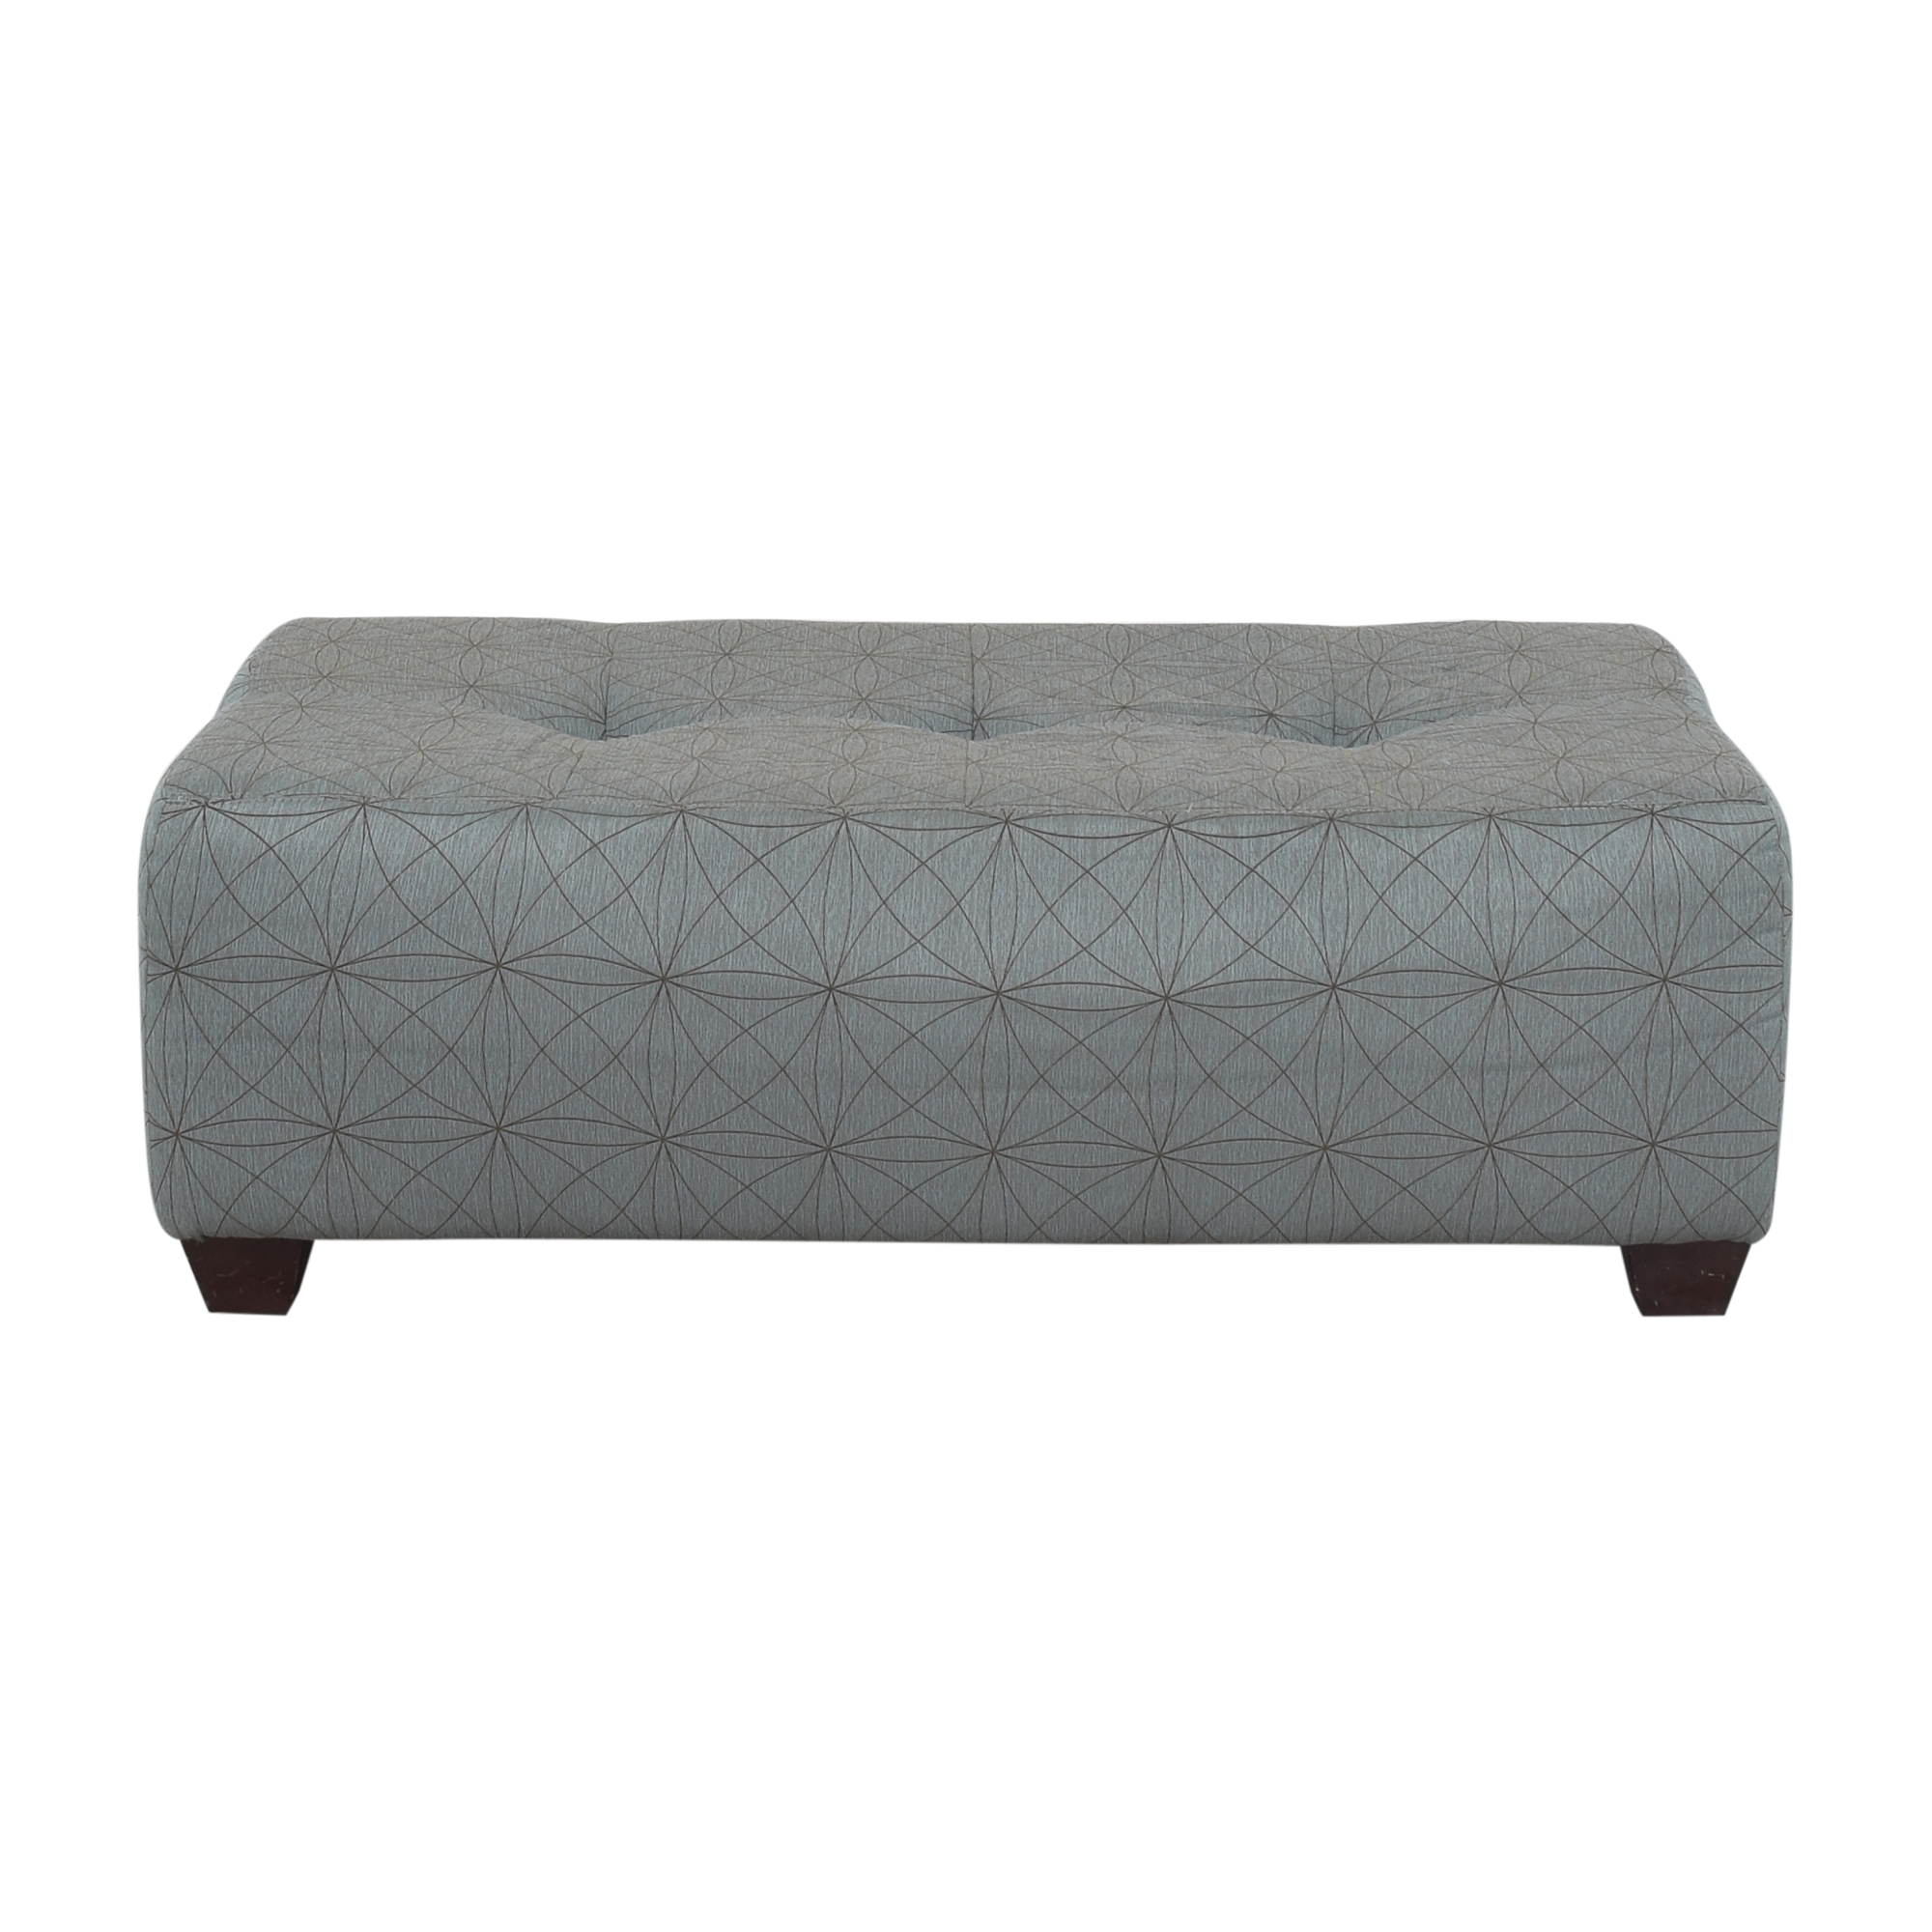 Patterned Tufted Ottoman discount